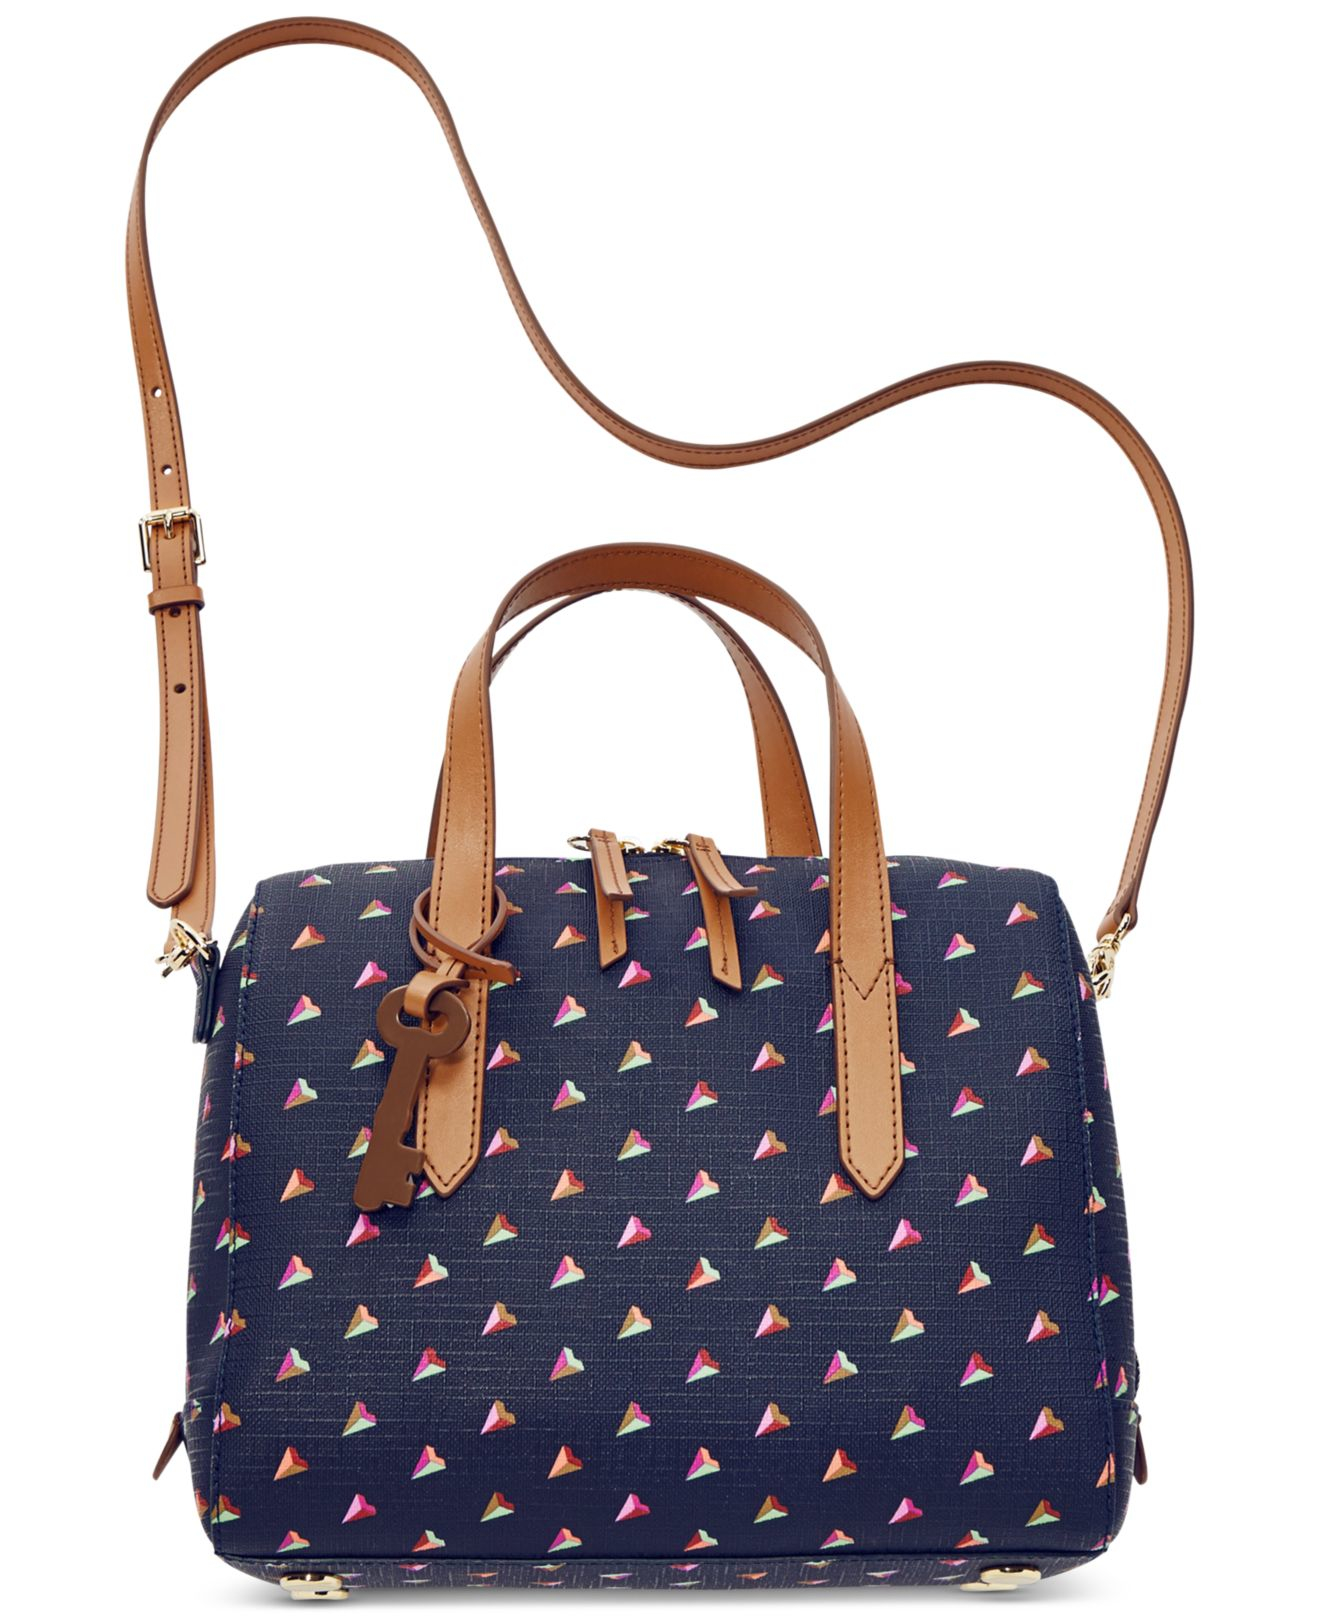 Fossil Sydney Printed Hearts Satchel Bag in Blue | Lyst